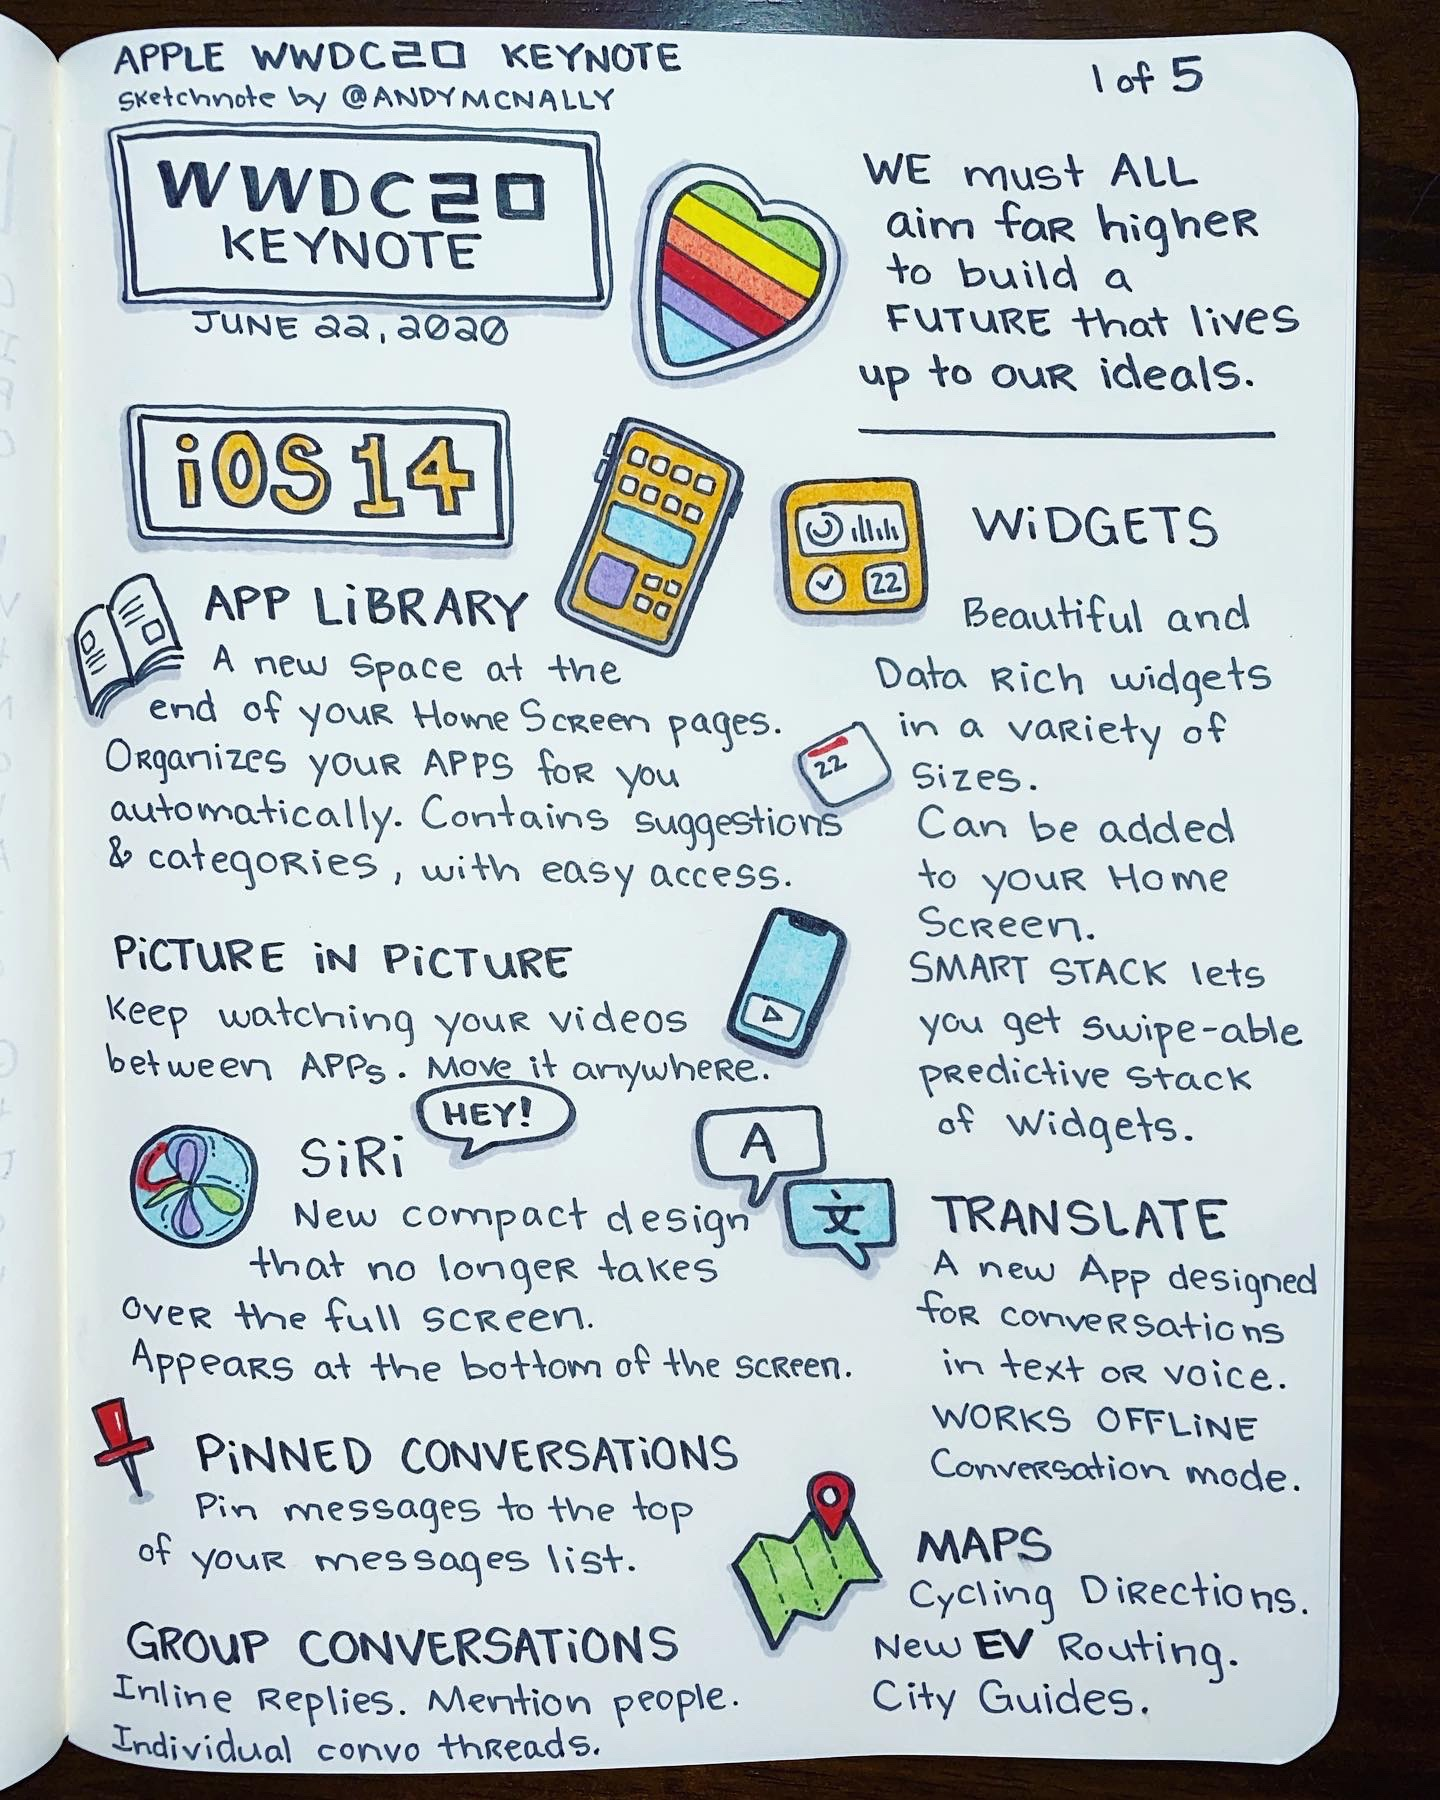 Apple WWDC 2020 Keynote drawing 1 of 5